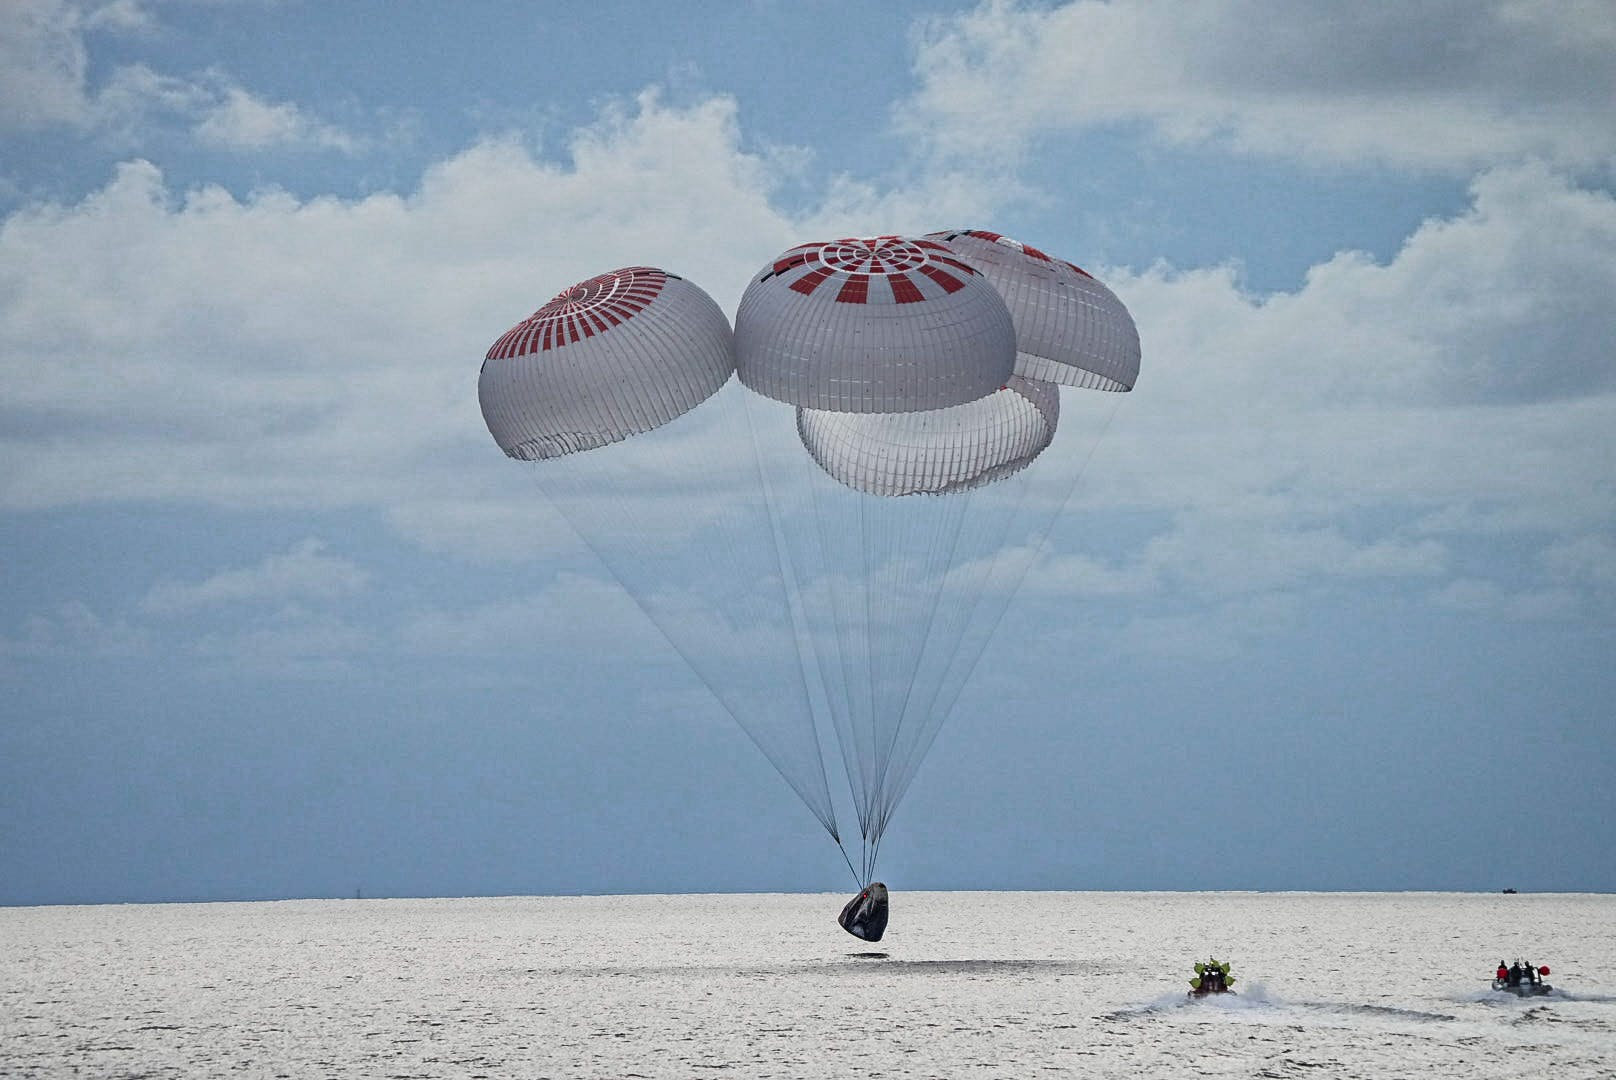 Crew Dragon Resilience splashes down with the Inspiraiton4 crew. Credit: SpaceX